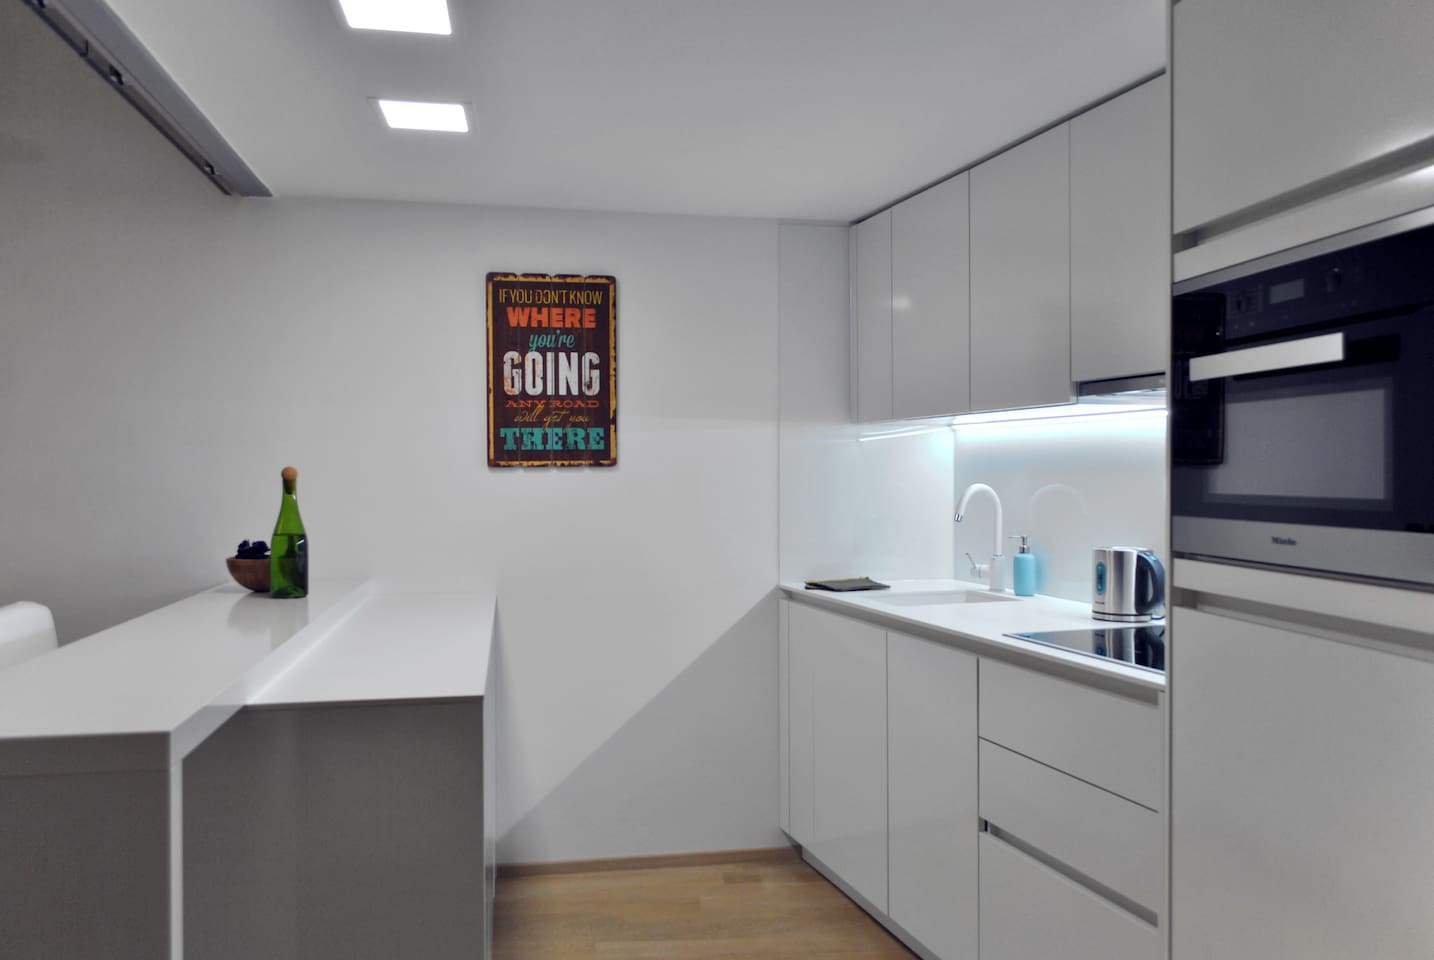 Apartment is equipped with high quality facilities, i.e., all Miele accessories in the kitchen.